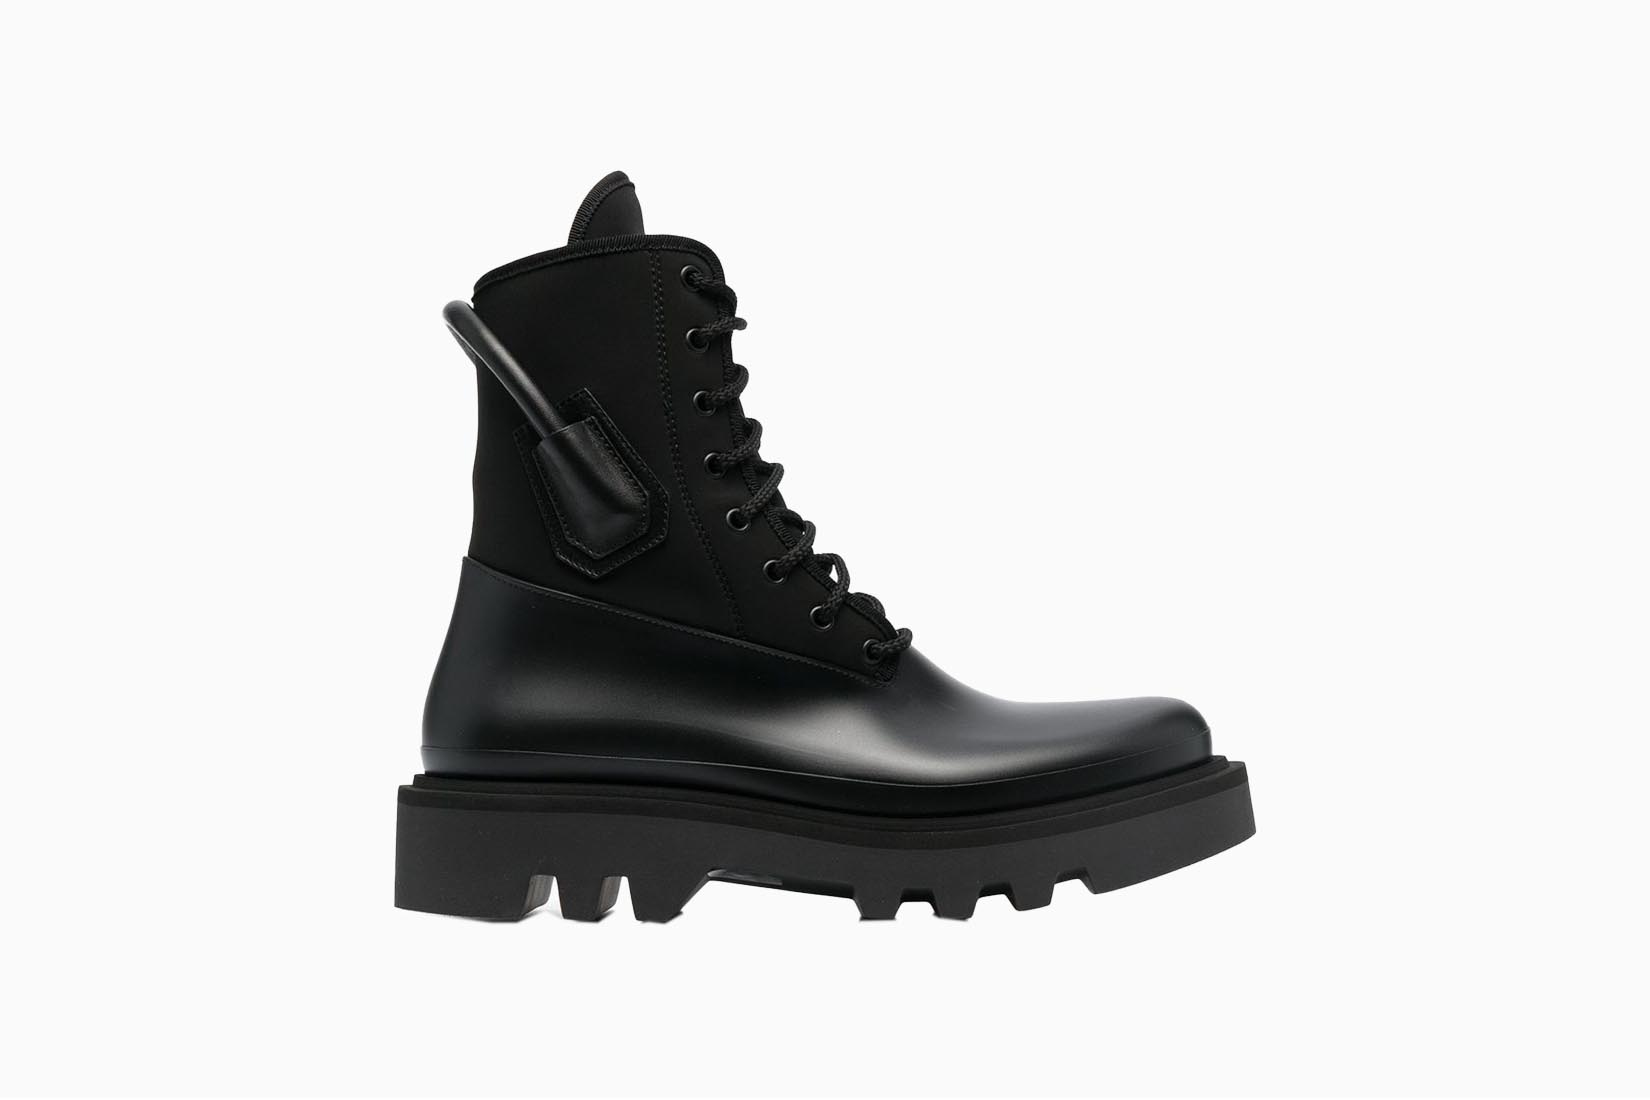 best boots men givenchy combat boots review Luxe Digital